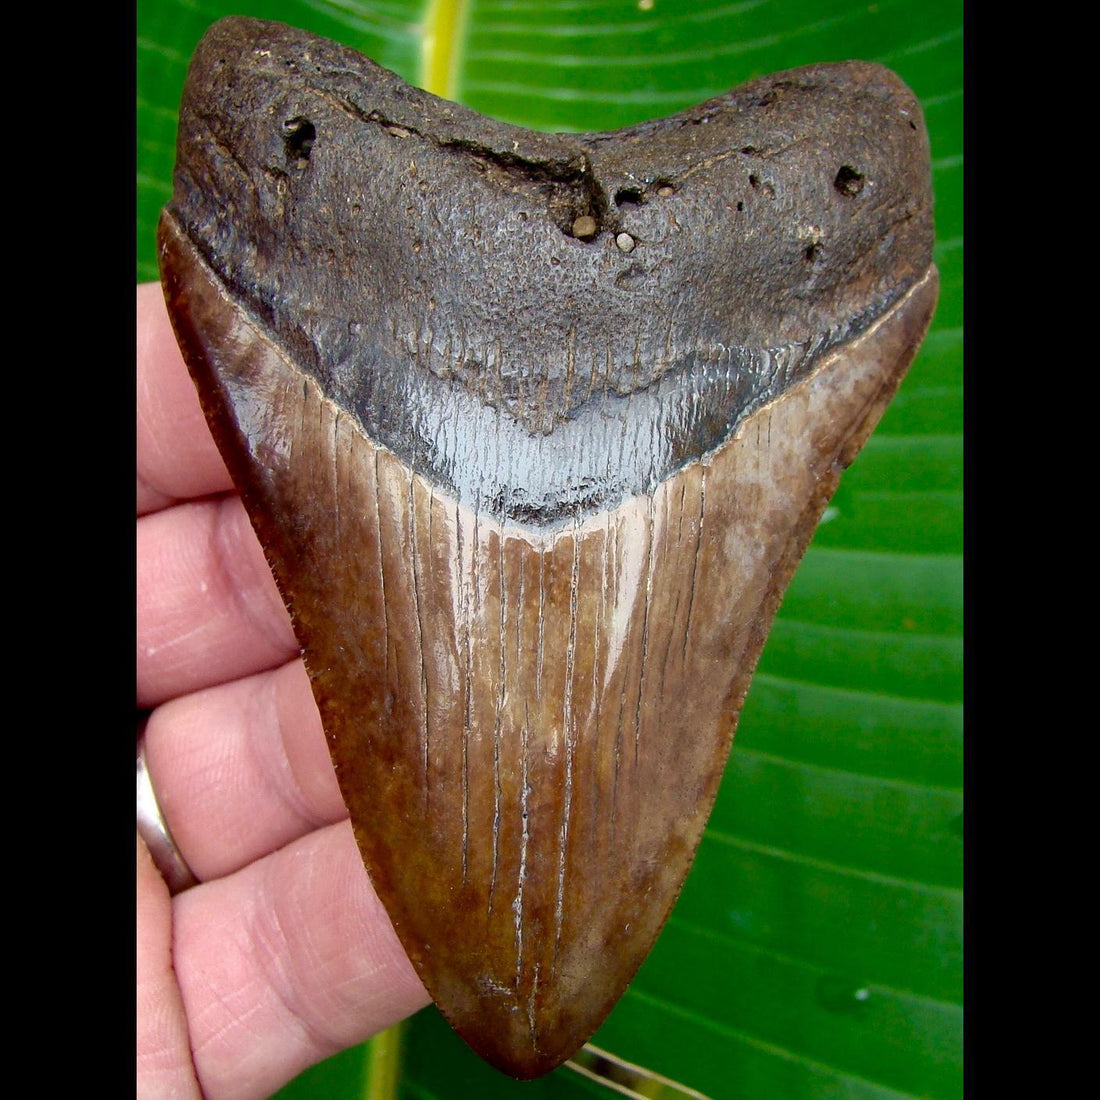 Megalodon Tooth 3 & 7/8 in. South Carolina Megalodon Shark Tooth